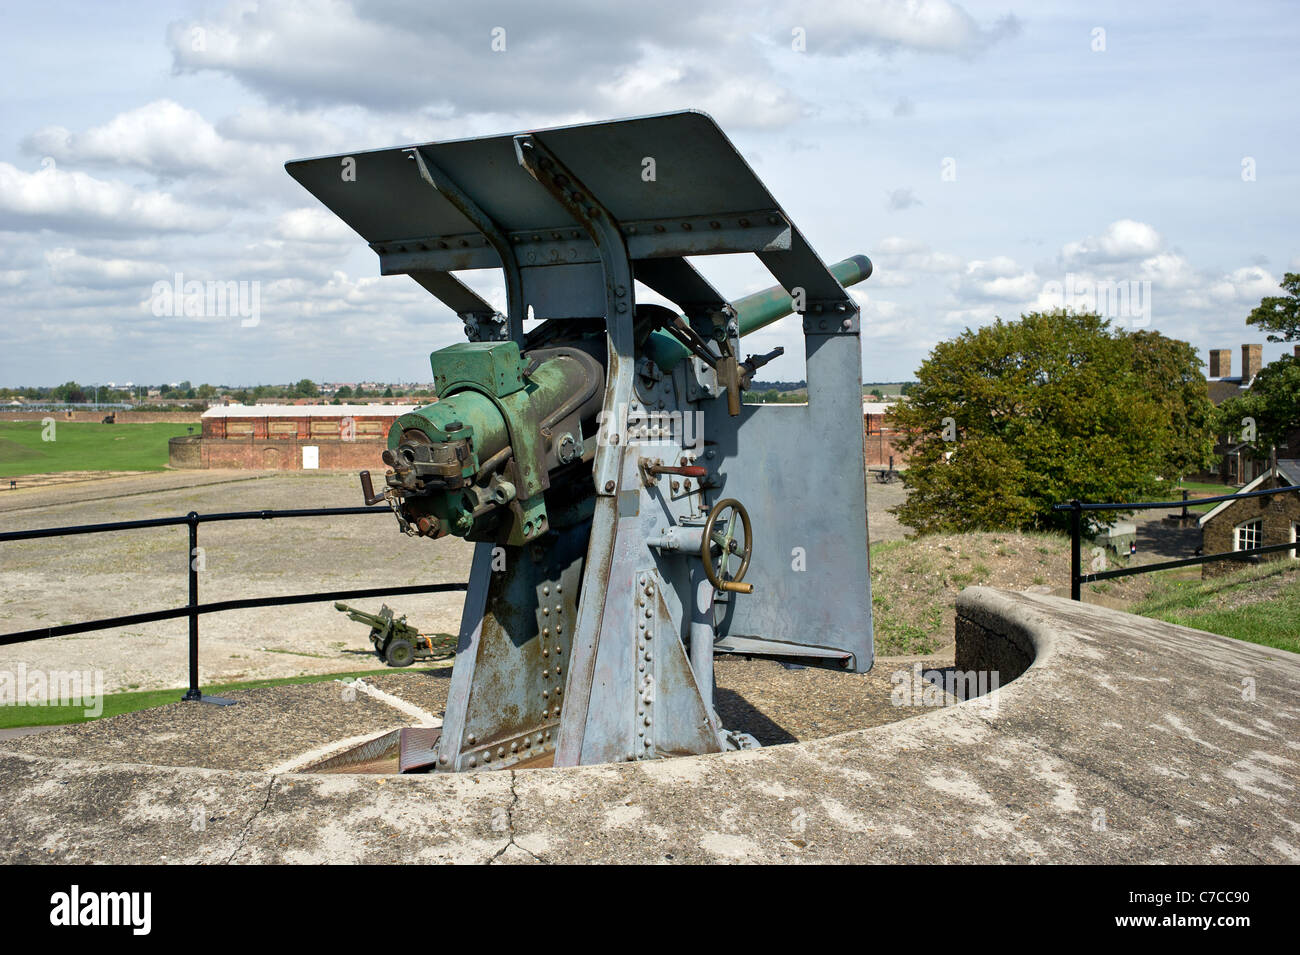 A 12 pdr gun at Tilbury Fort in Essex - Stock Image